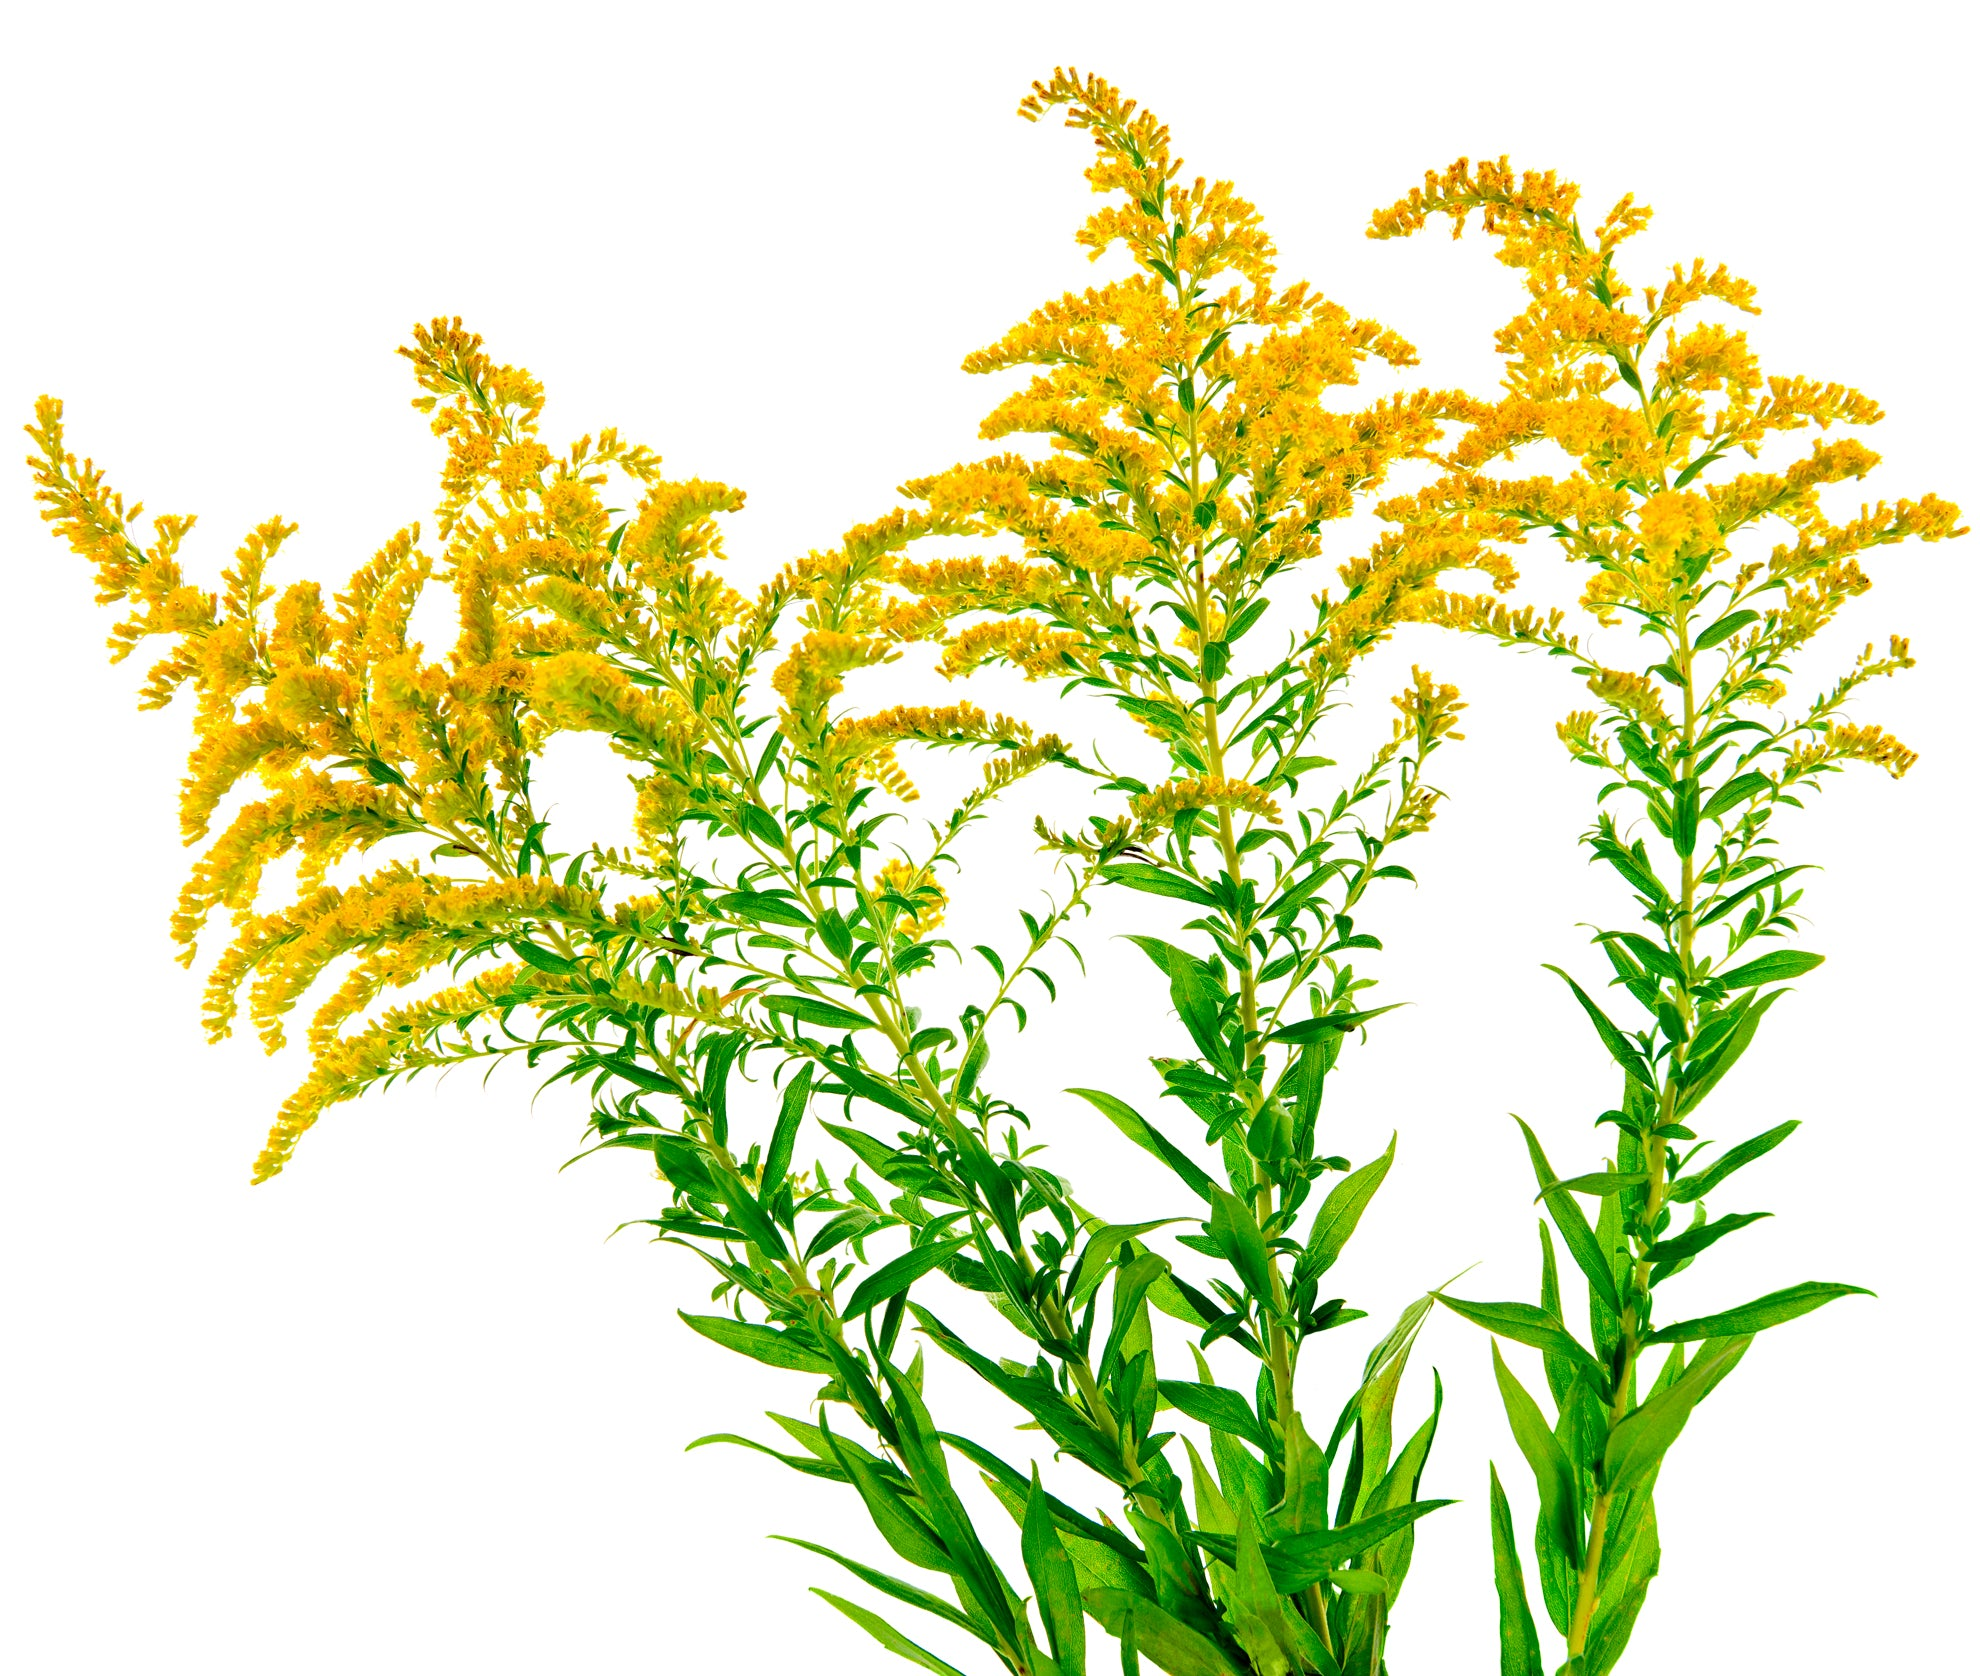 Plants that Attract Beneficial Insects: Goldenrod